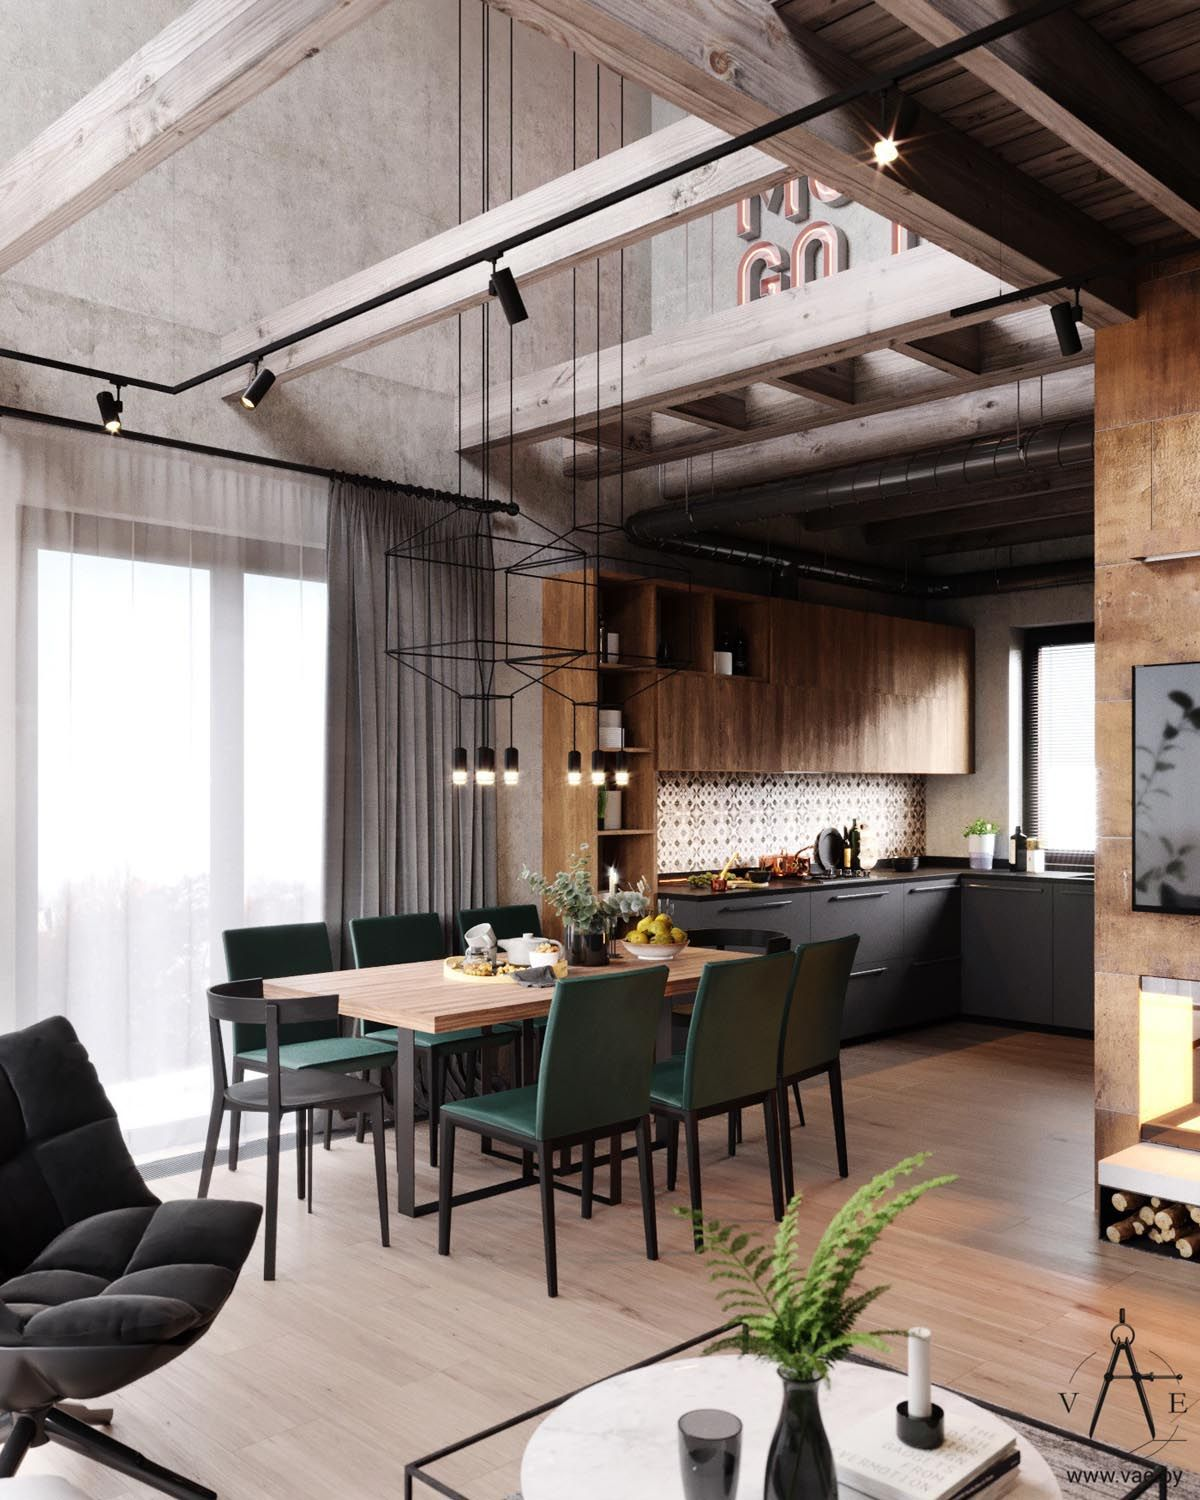 15 Amazing Interior Design Ideas For Modern Loft: Warm Industrial Style House (With Layout)